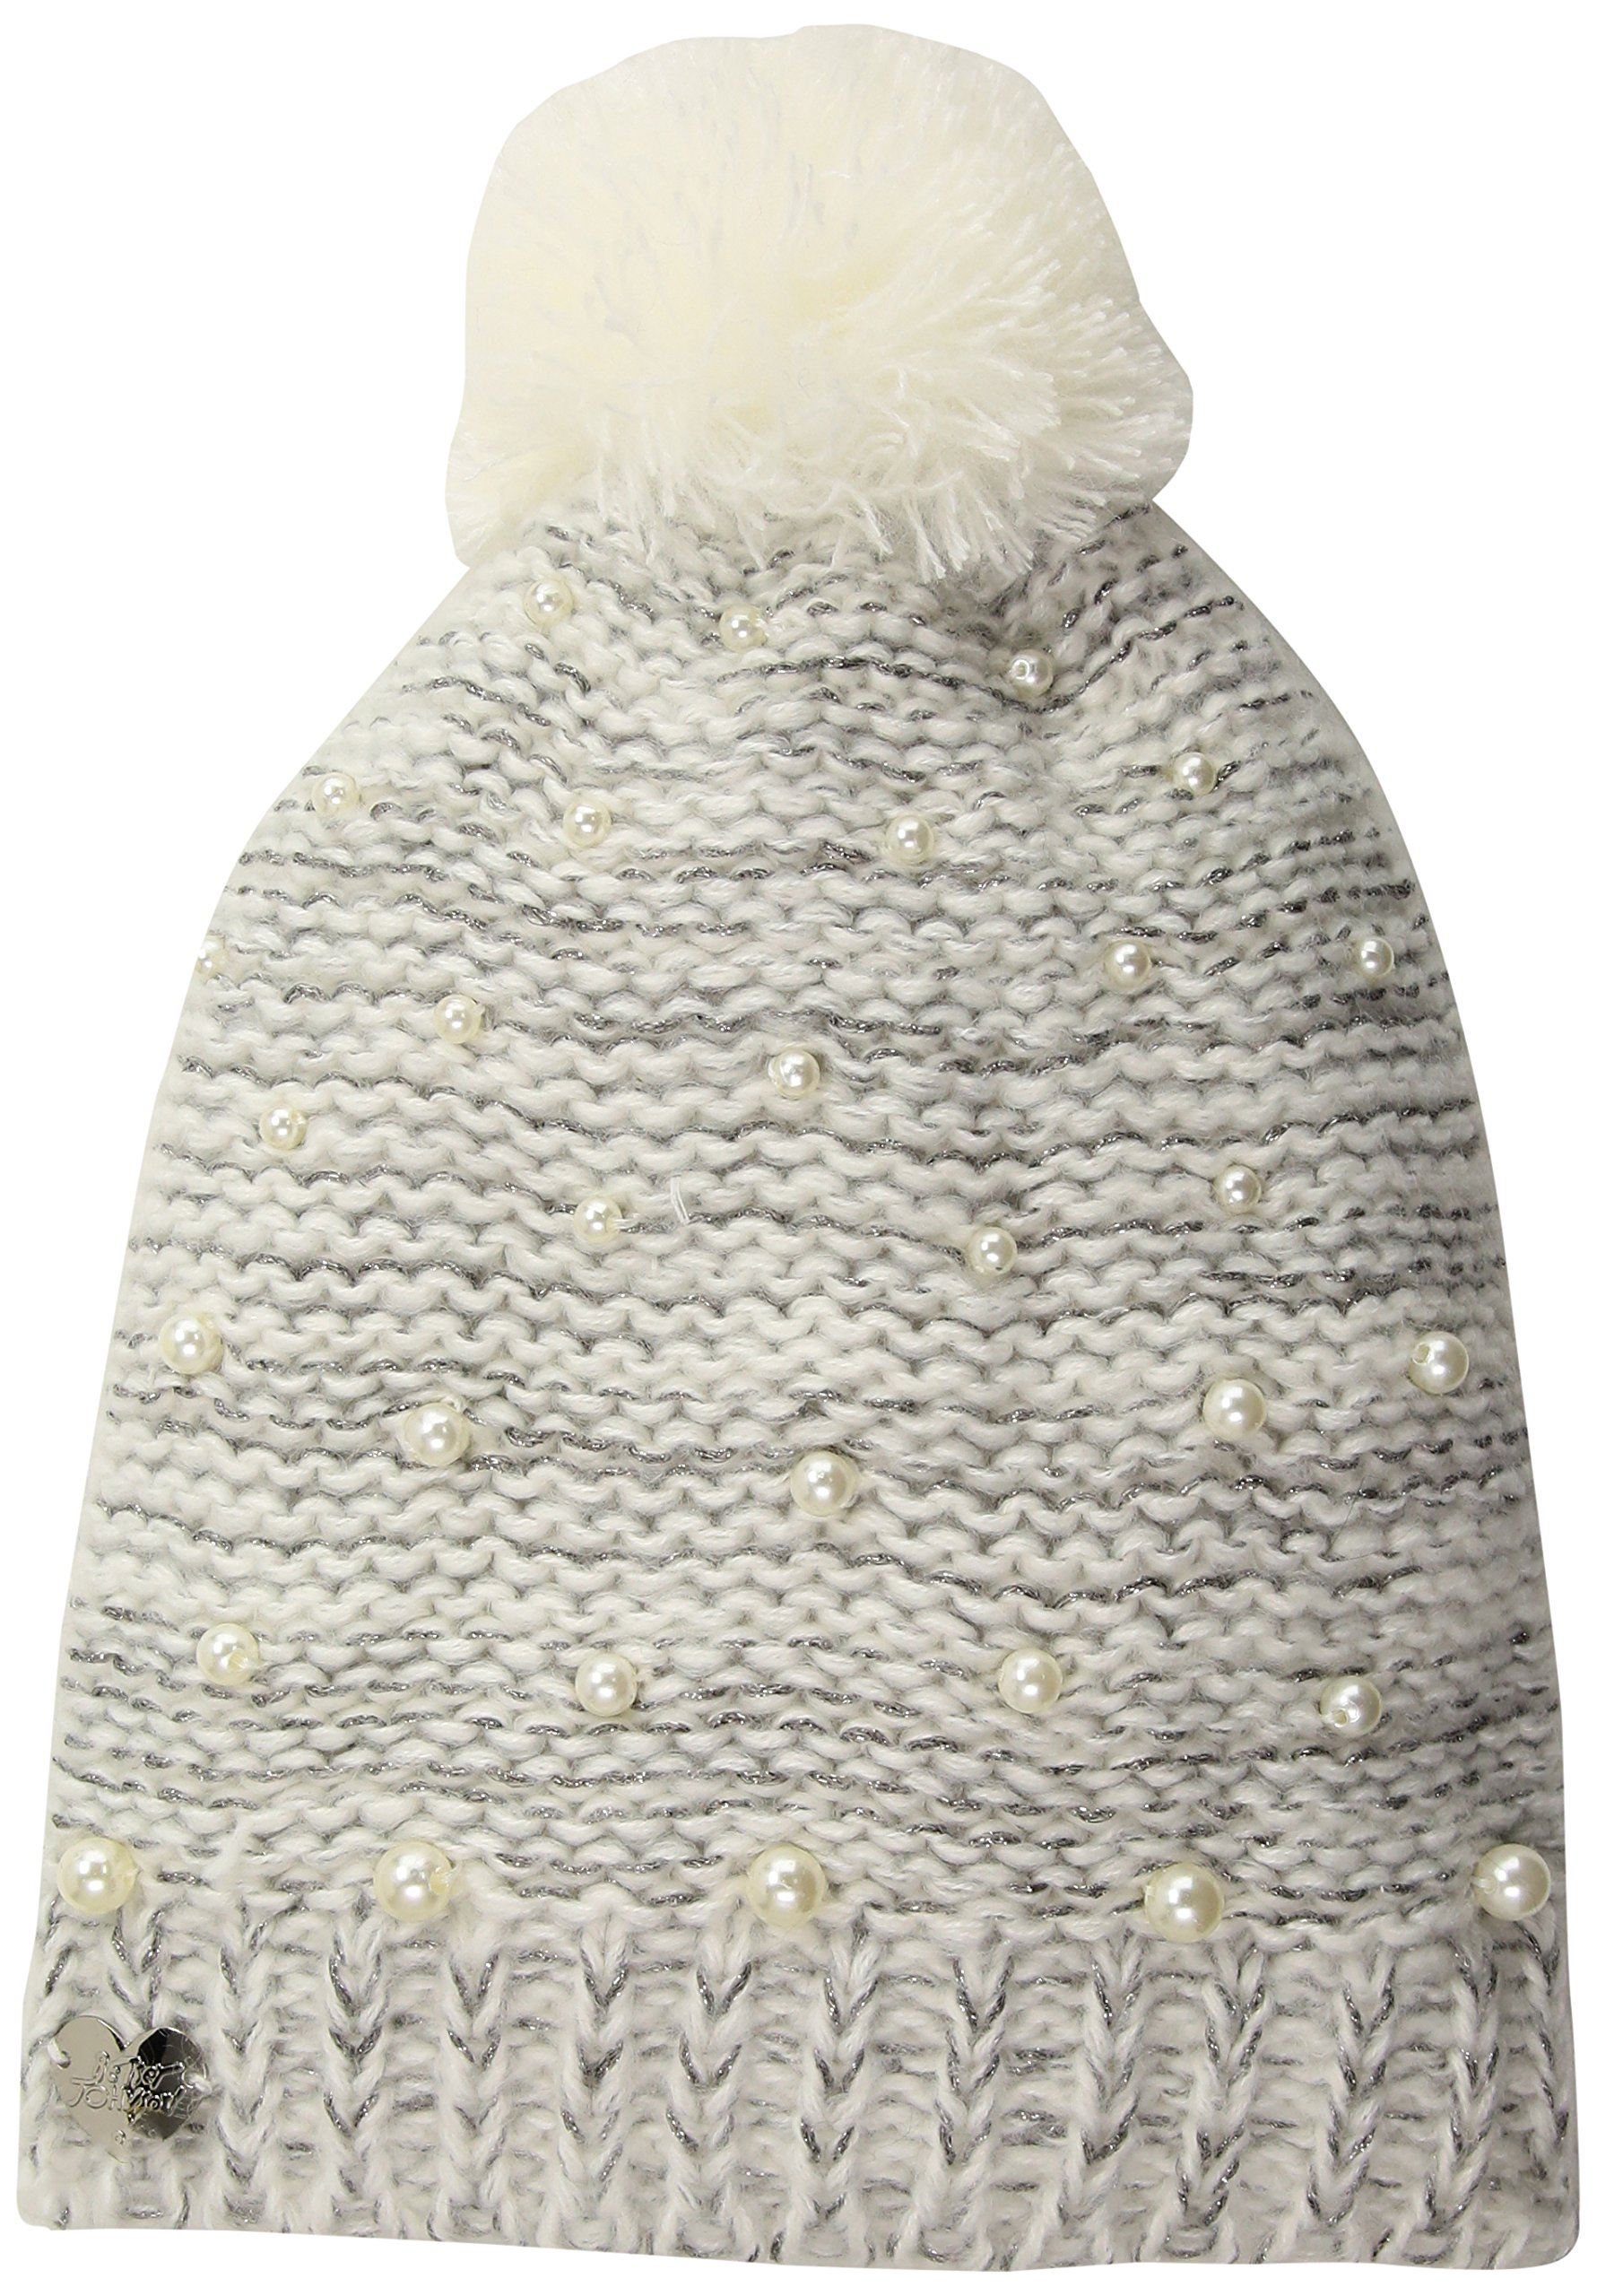 Betsey Johnson Women's Cascading Pearls Beanie, Ivory, ONE SIZE